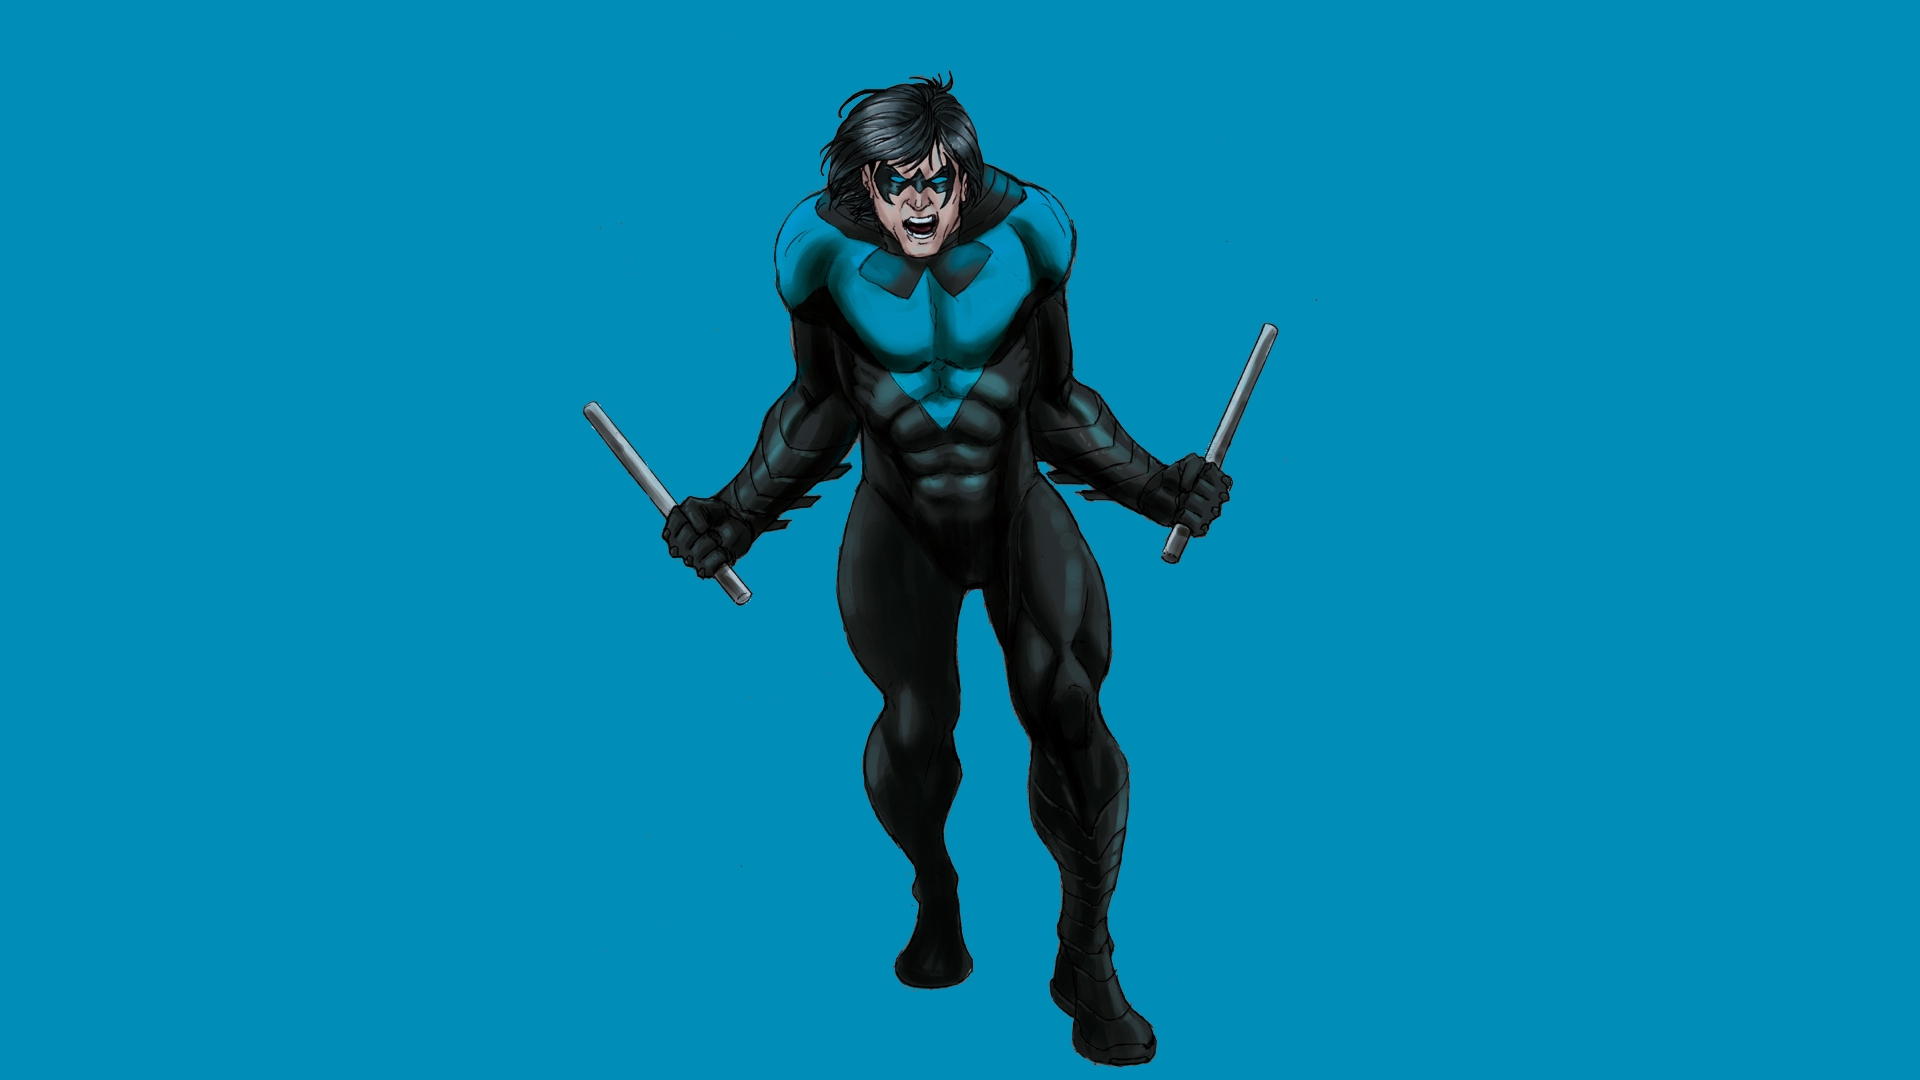 Nightwing Wallpaper Iphone Comics   nightwing wallpaper 1920x1080